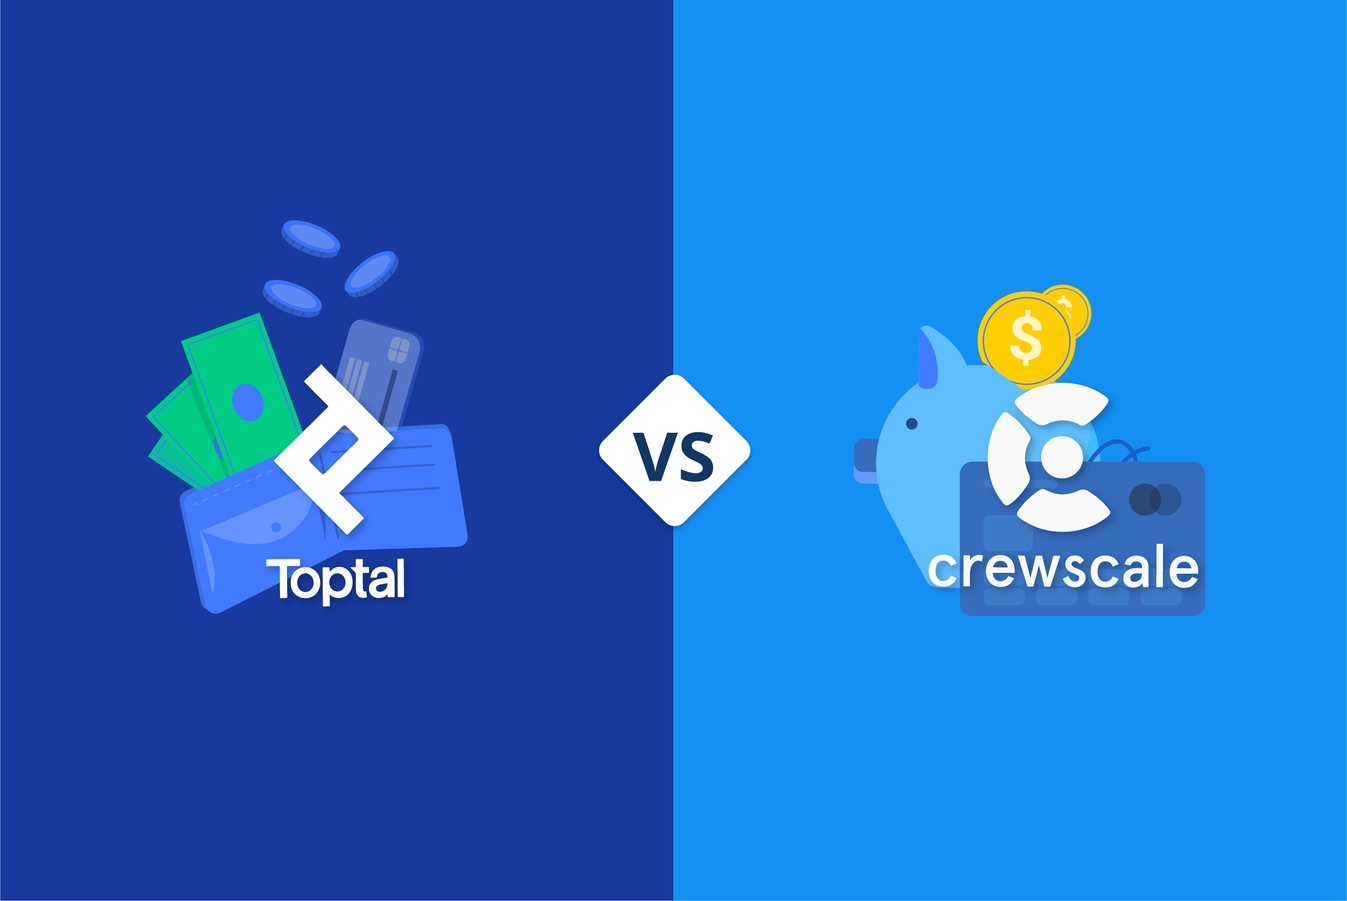 A Quick Overview of Crewscale vs Toptal